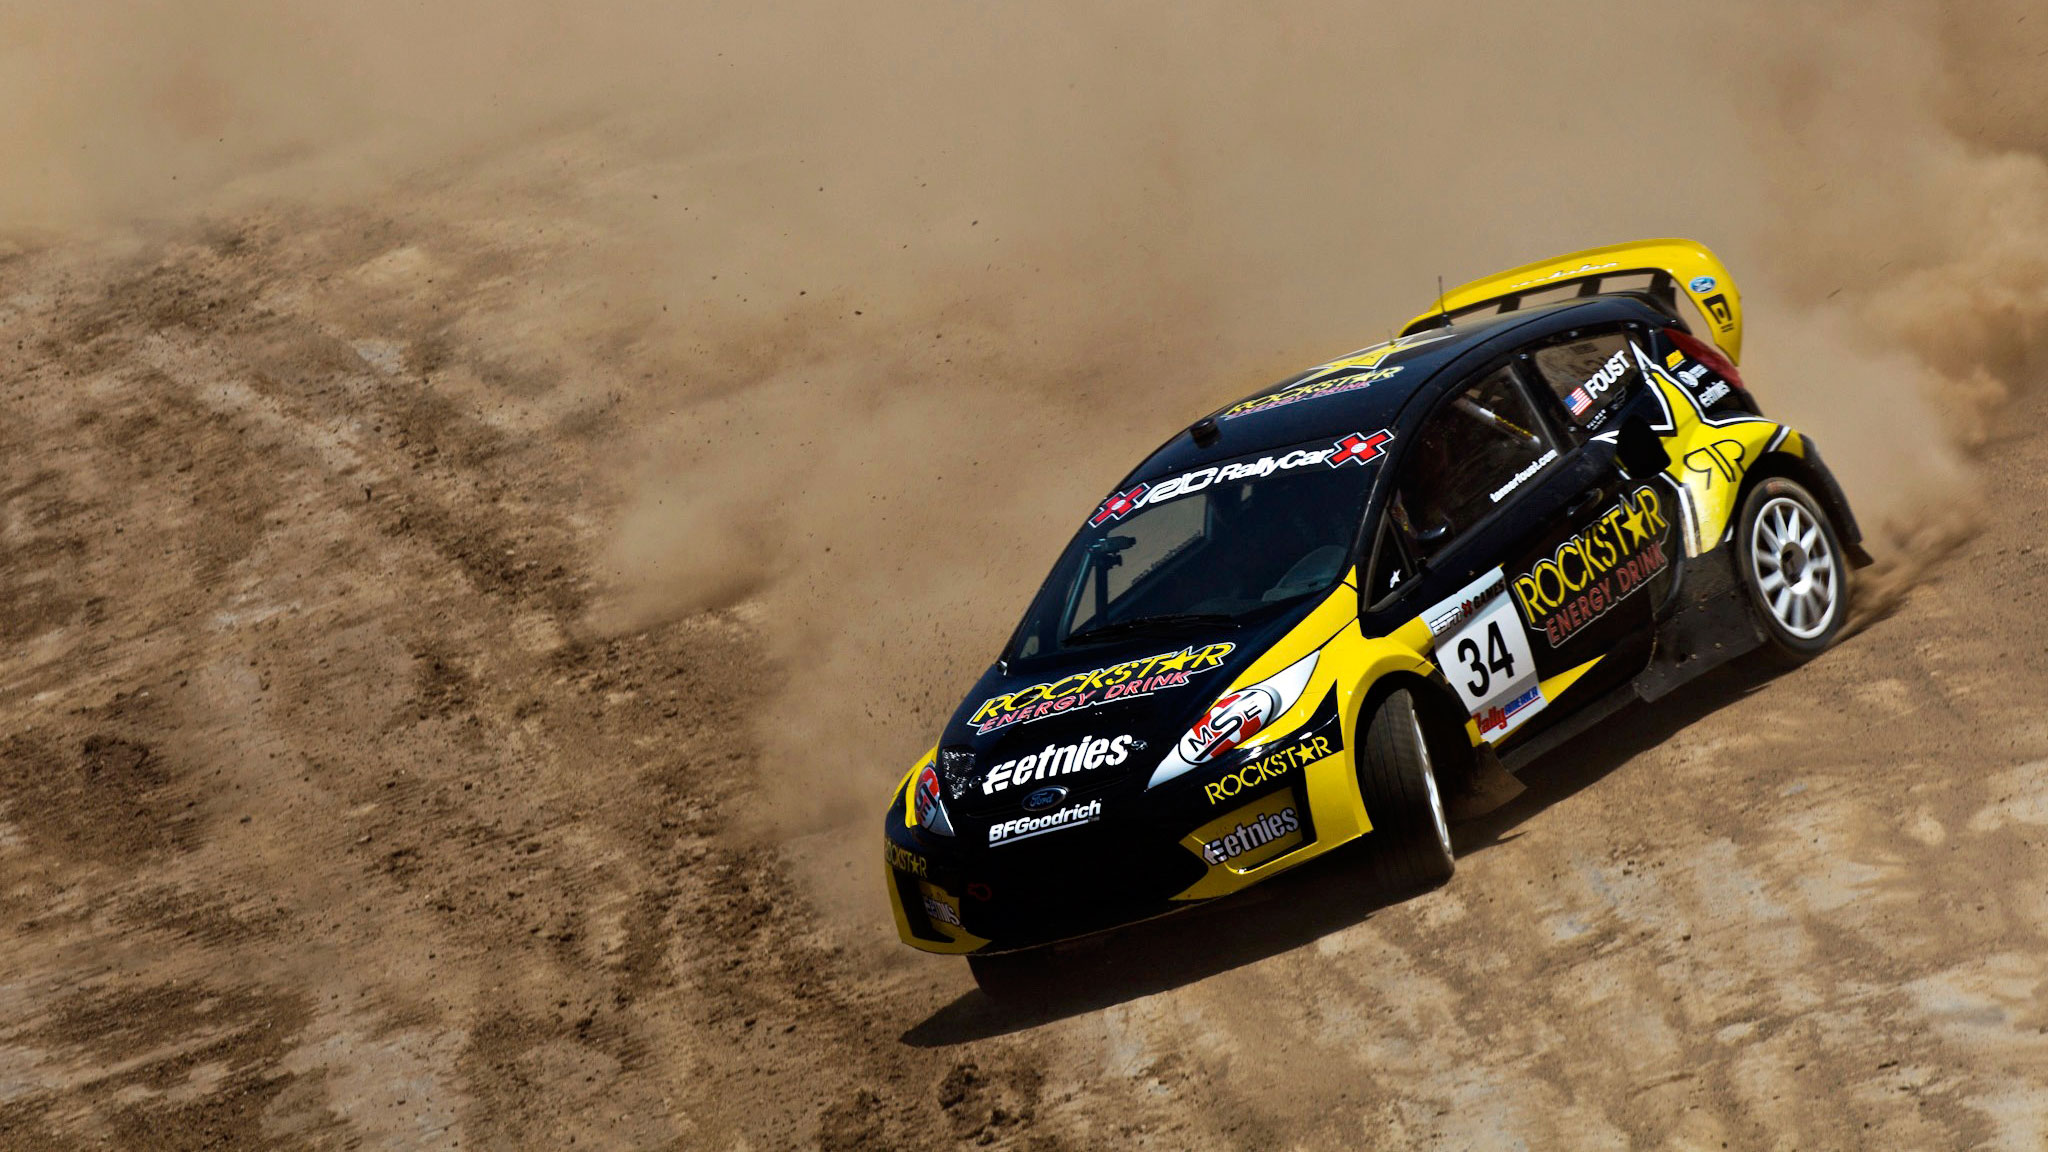 Under the hood of X Games RallyCross cars